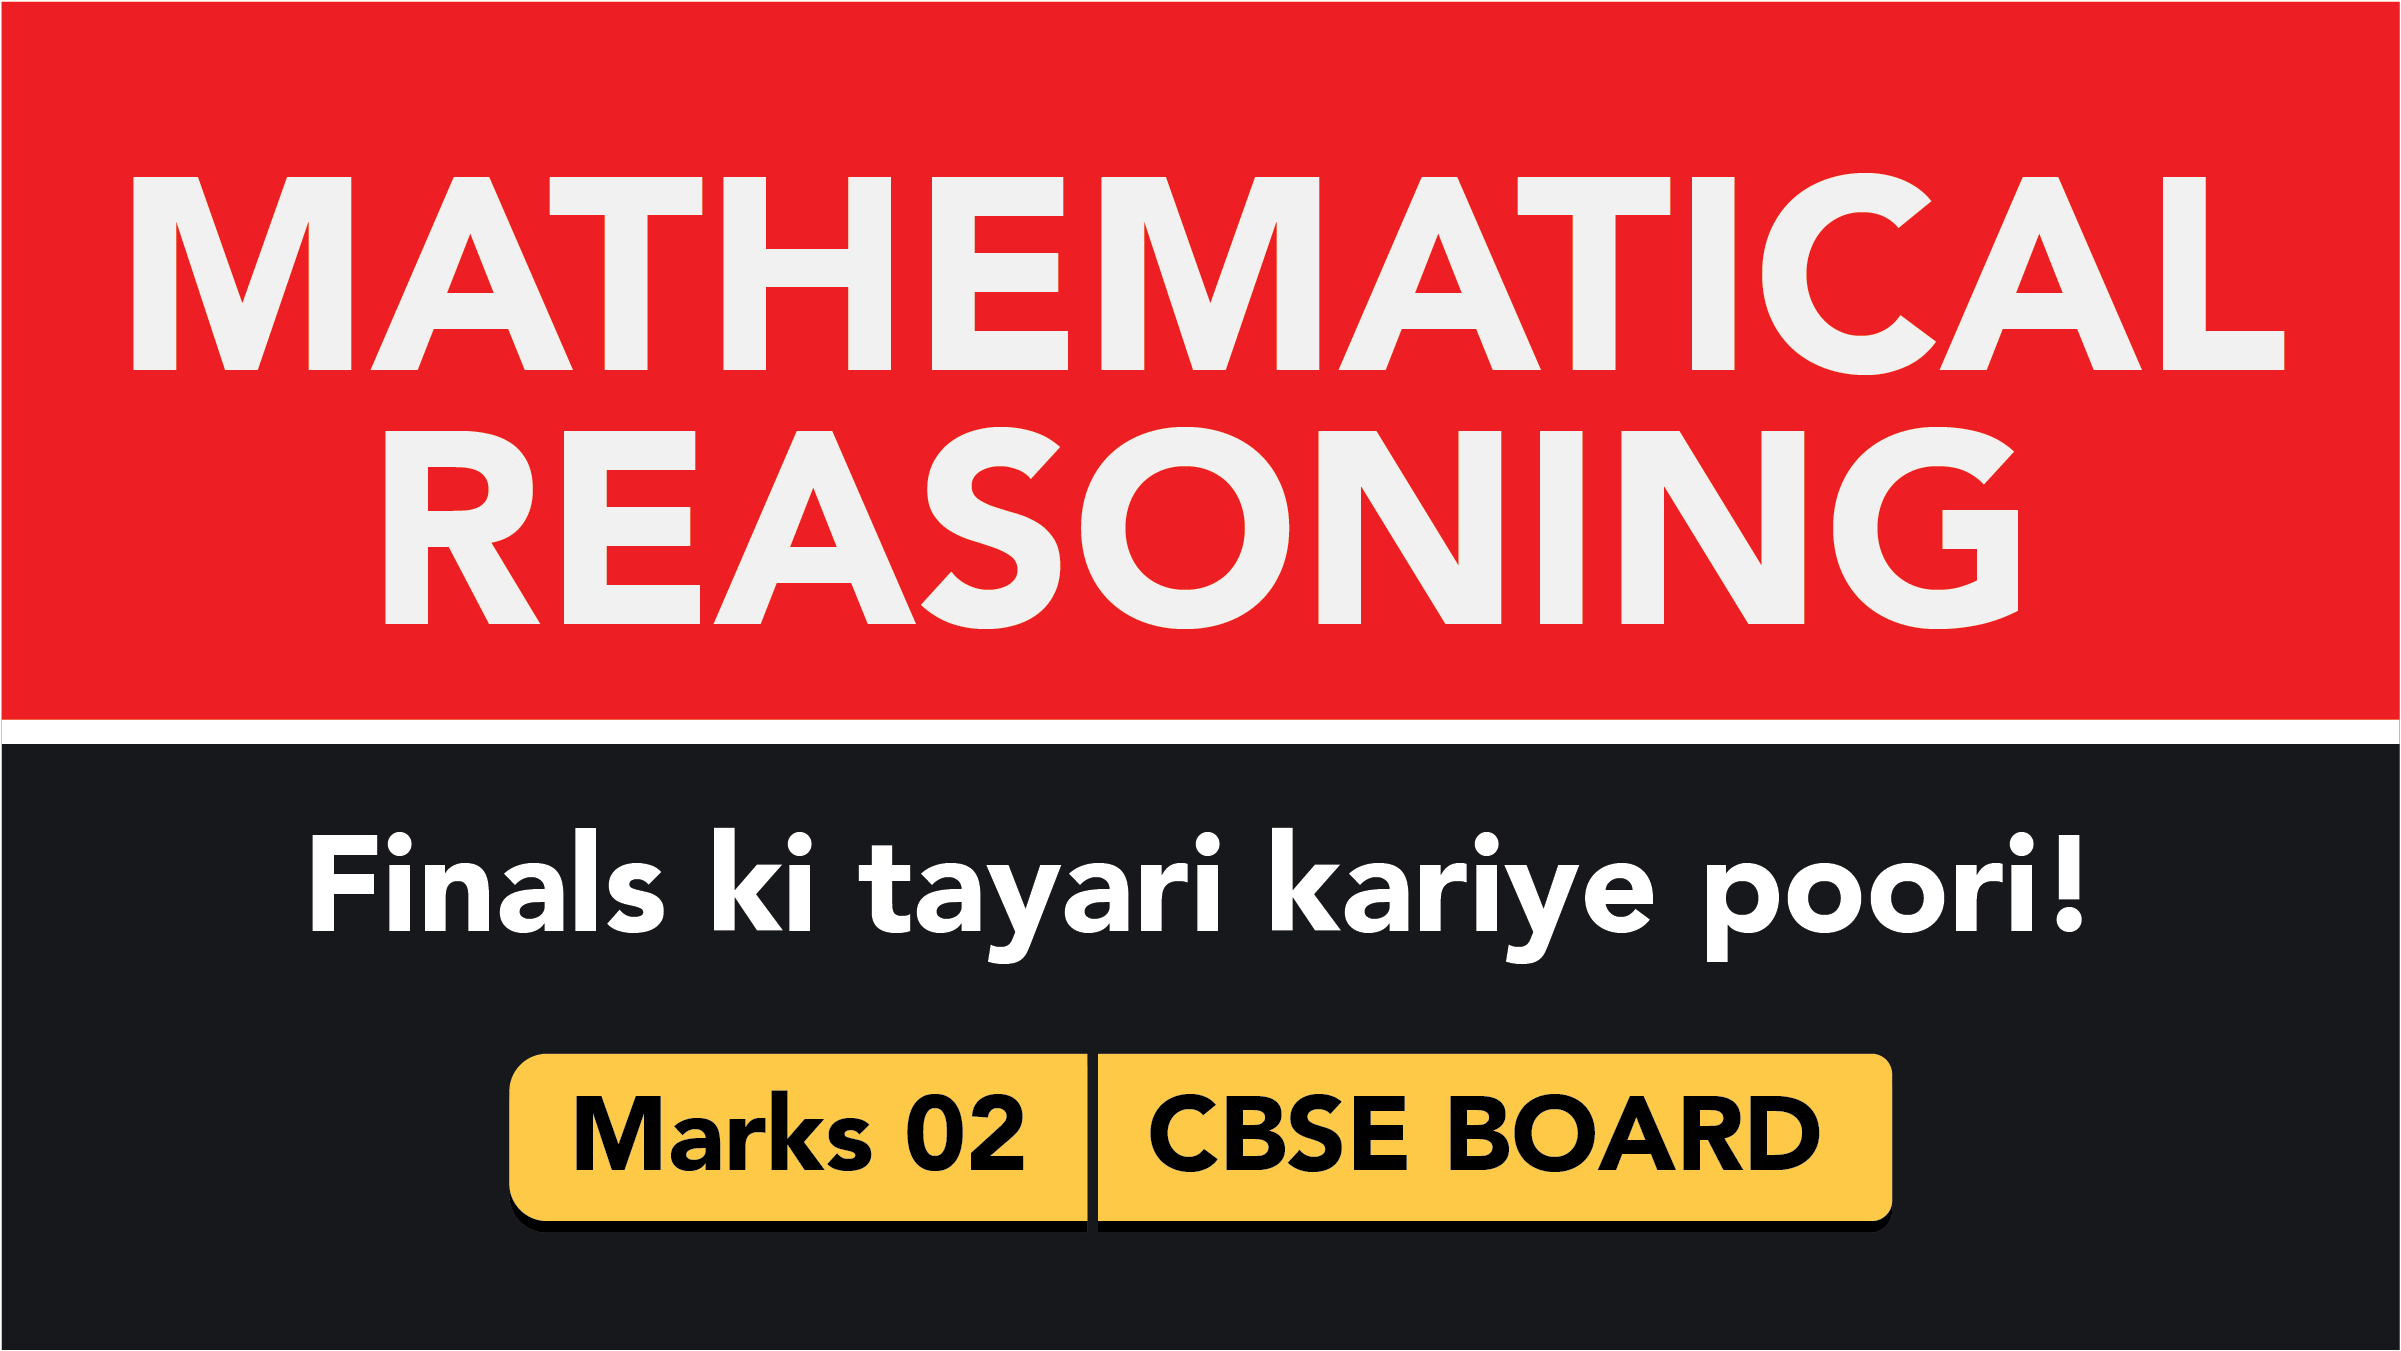 CBSE Board Class 11 MATHEMATICAL REASONING || Weightage and Important Topics